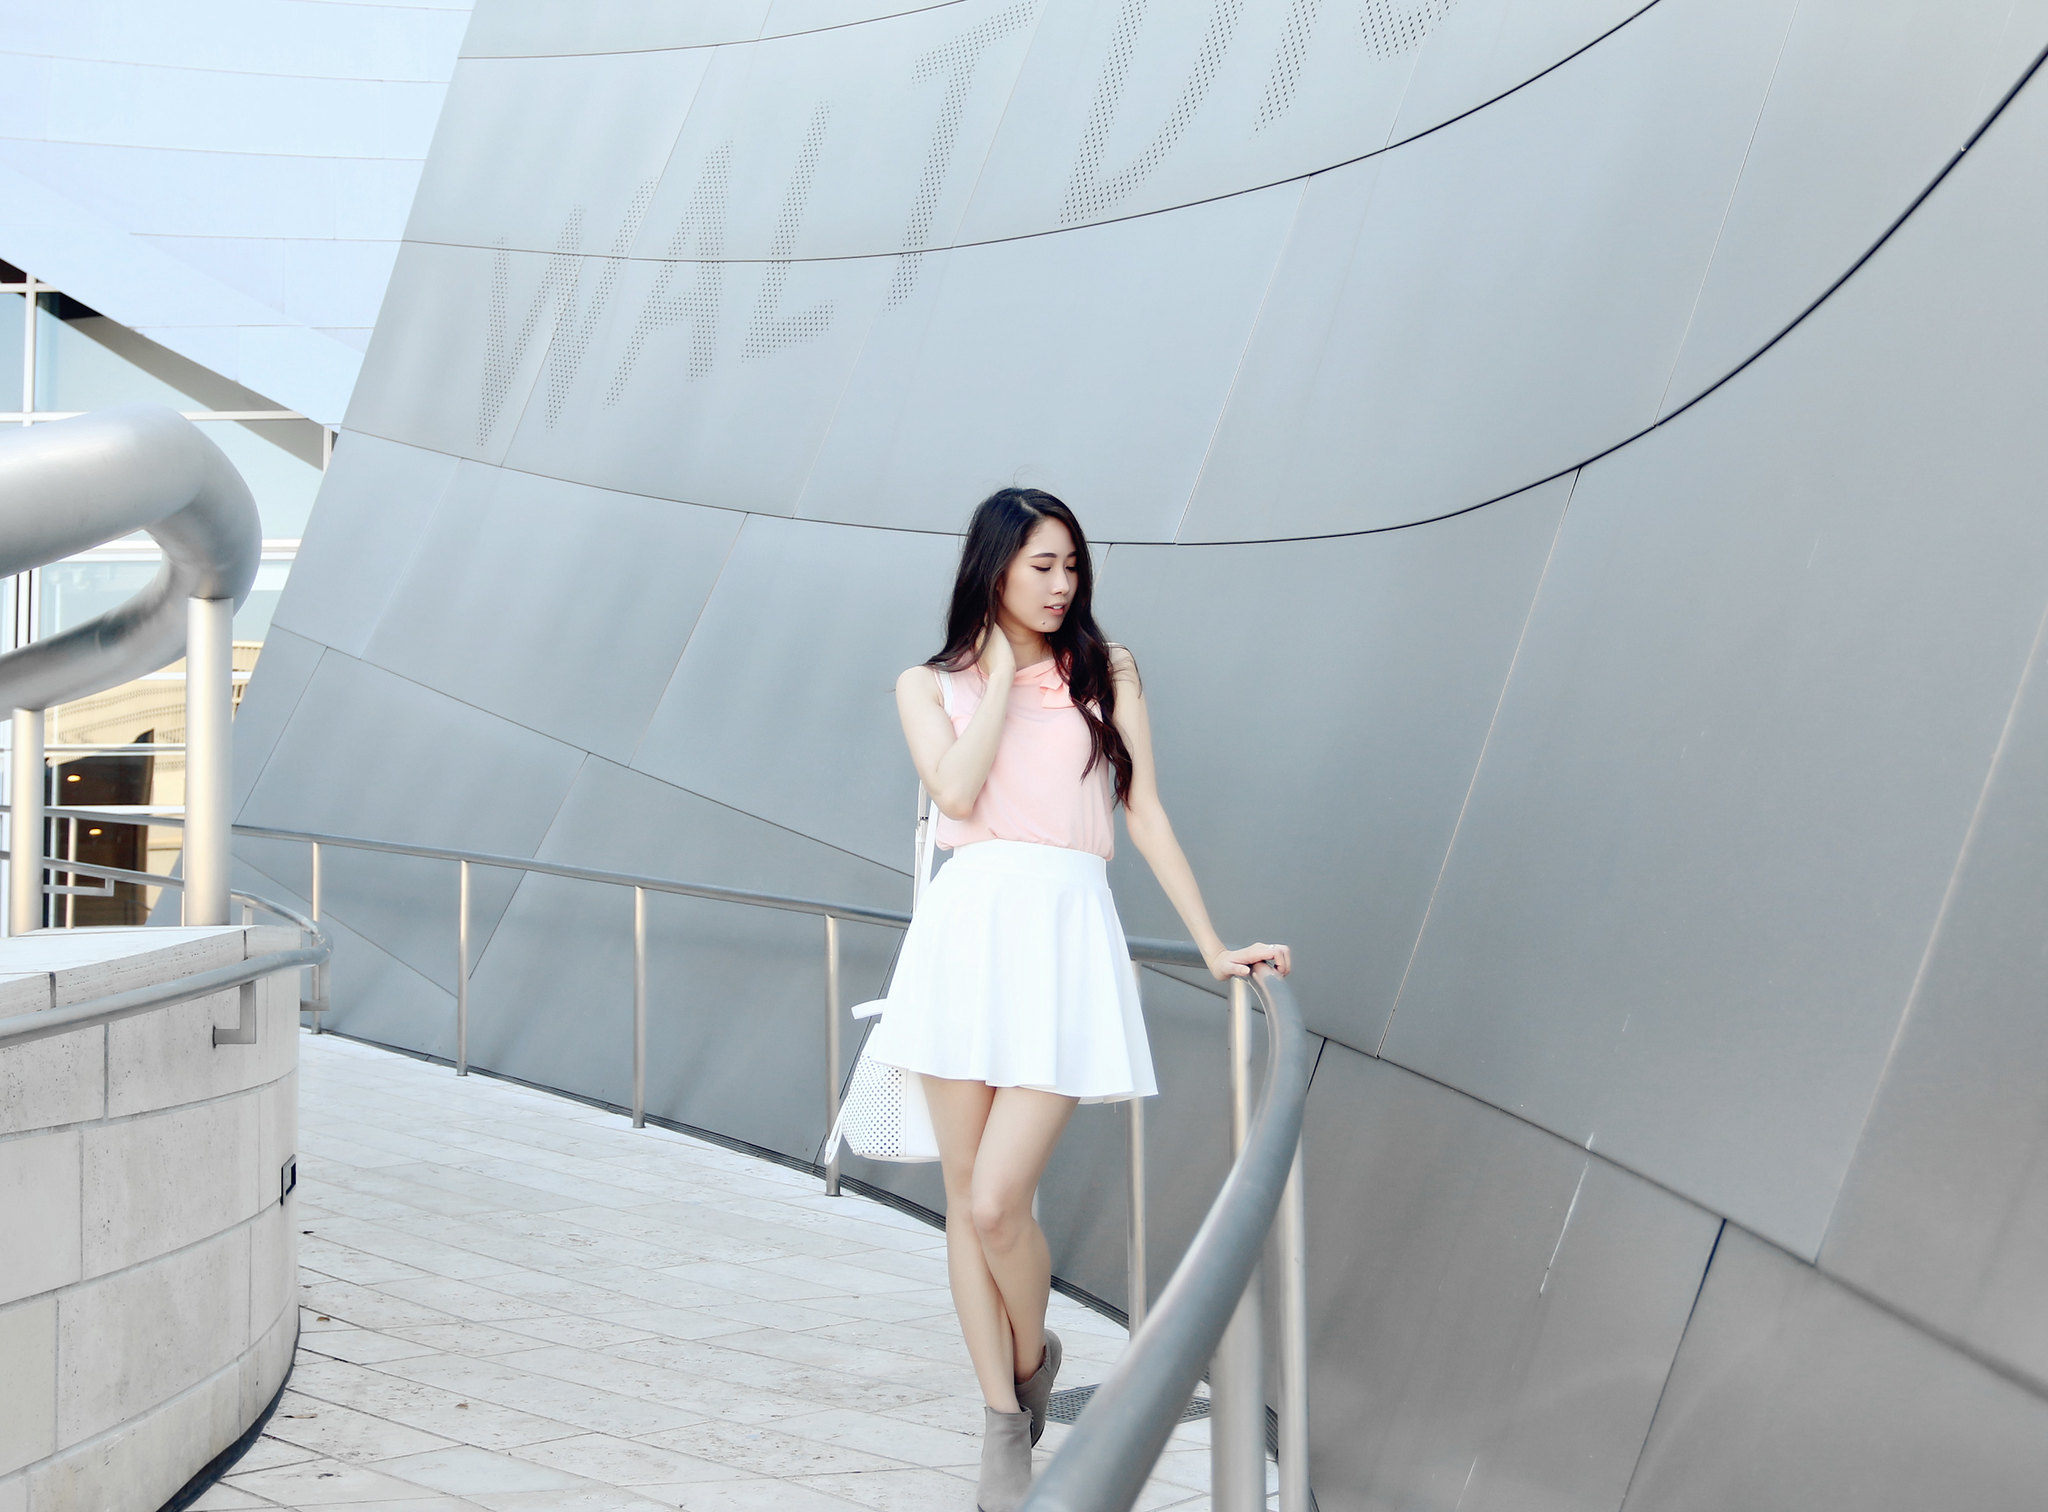 3019-ootd-fashion-bananarepublic-blush-ninewest-summerfashion-koreanfashion-clothestoyouuu-elizabeeetht